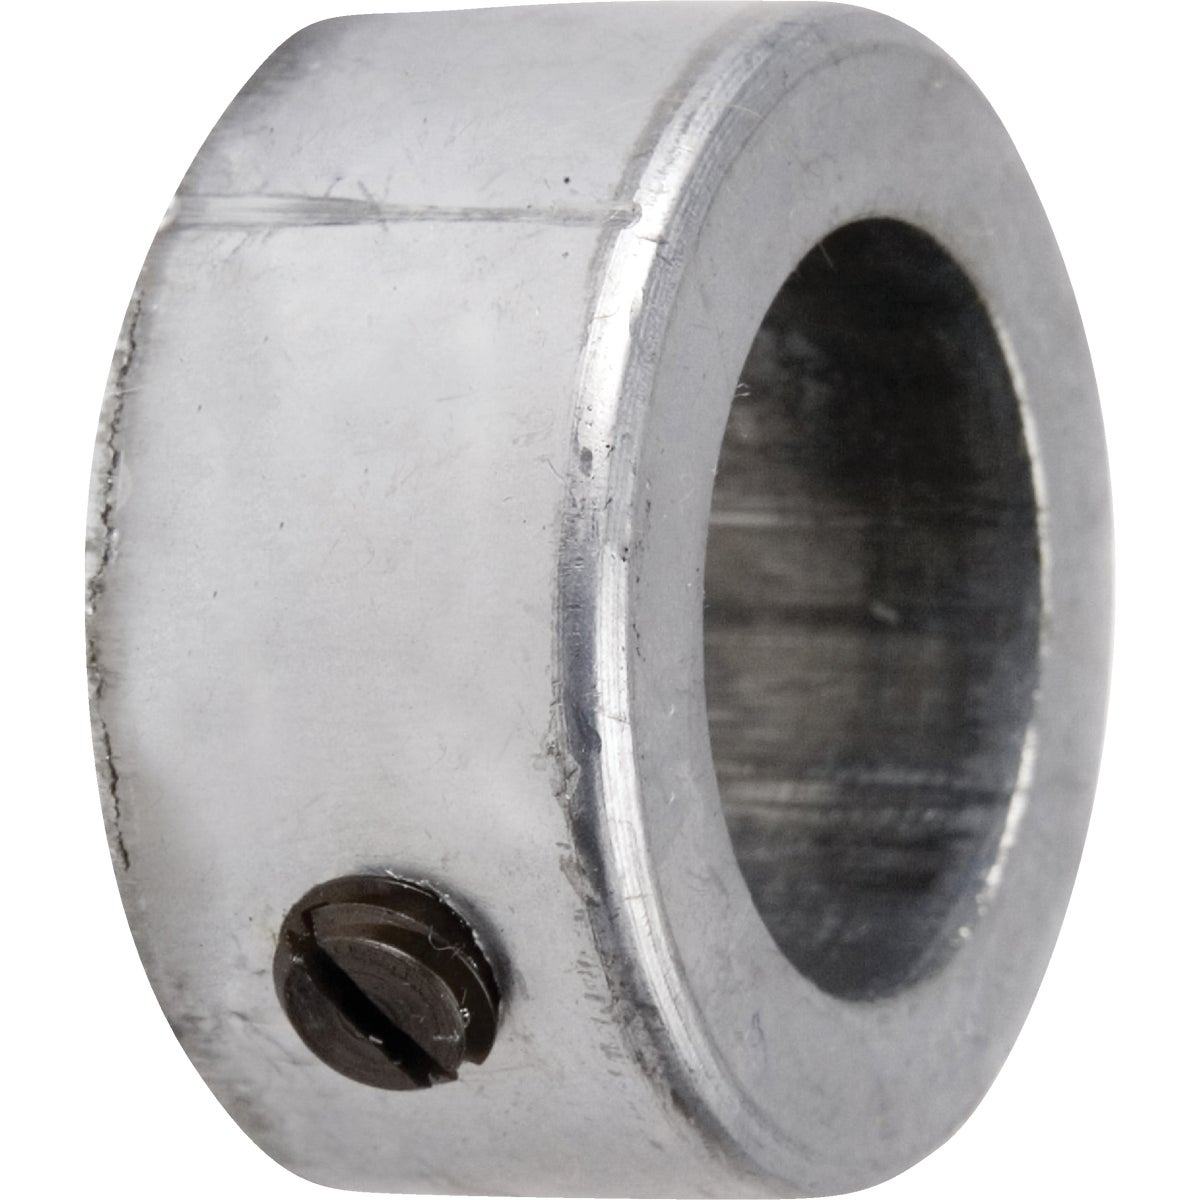 "1"" SHAFT COLLAR - 3100 by Chicago Die Casting"